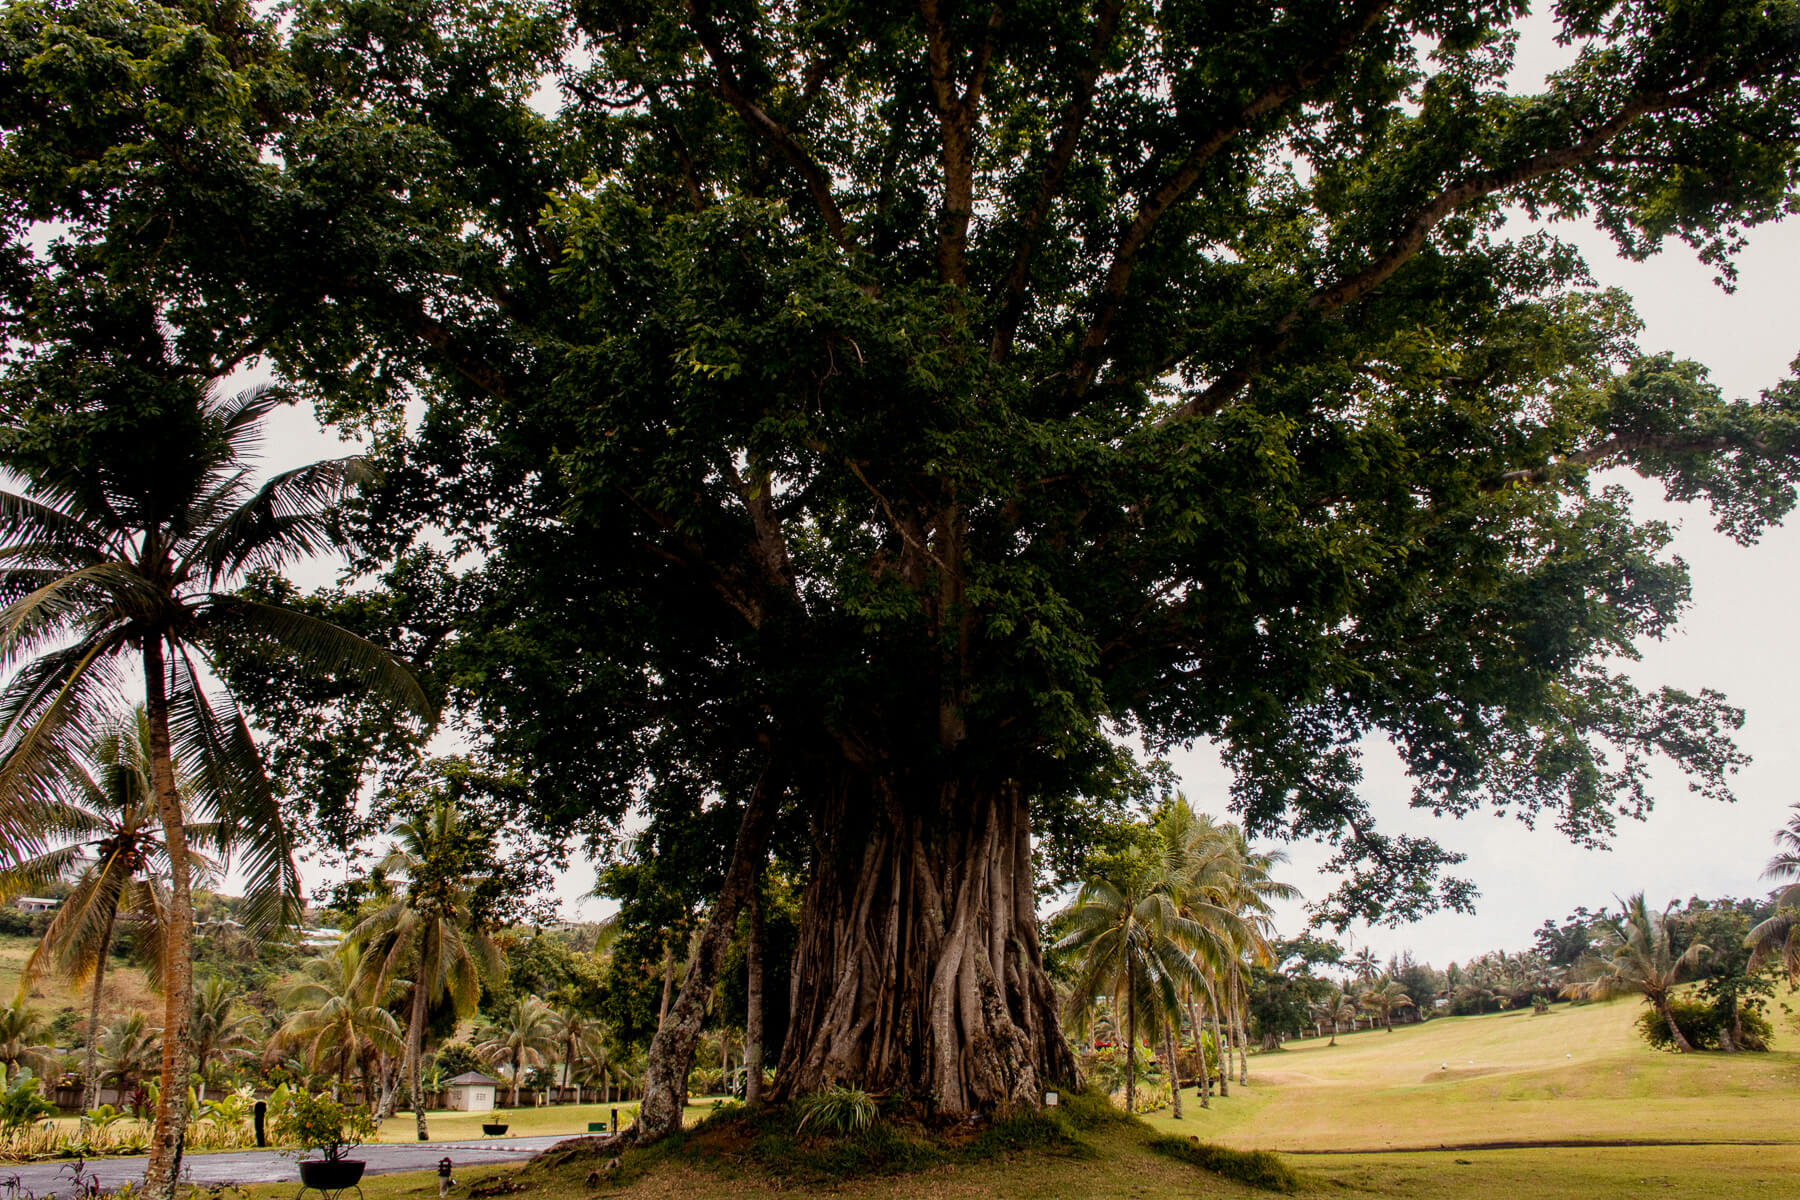 A huge tree with giant roots at the Warwick Le Lagon resort golf course